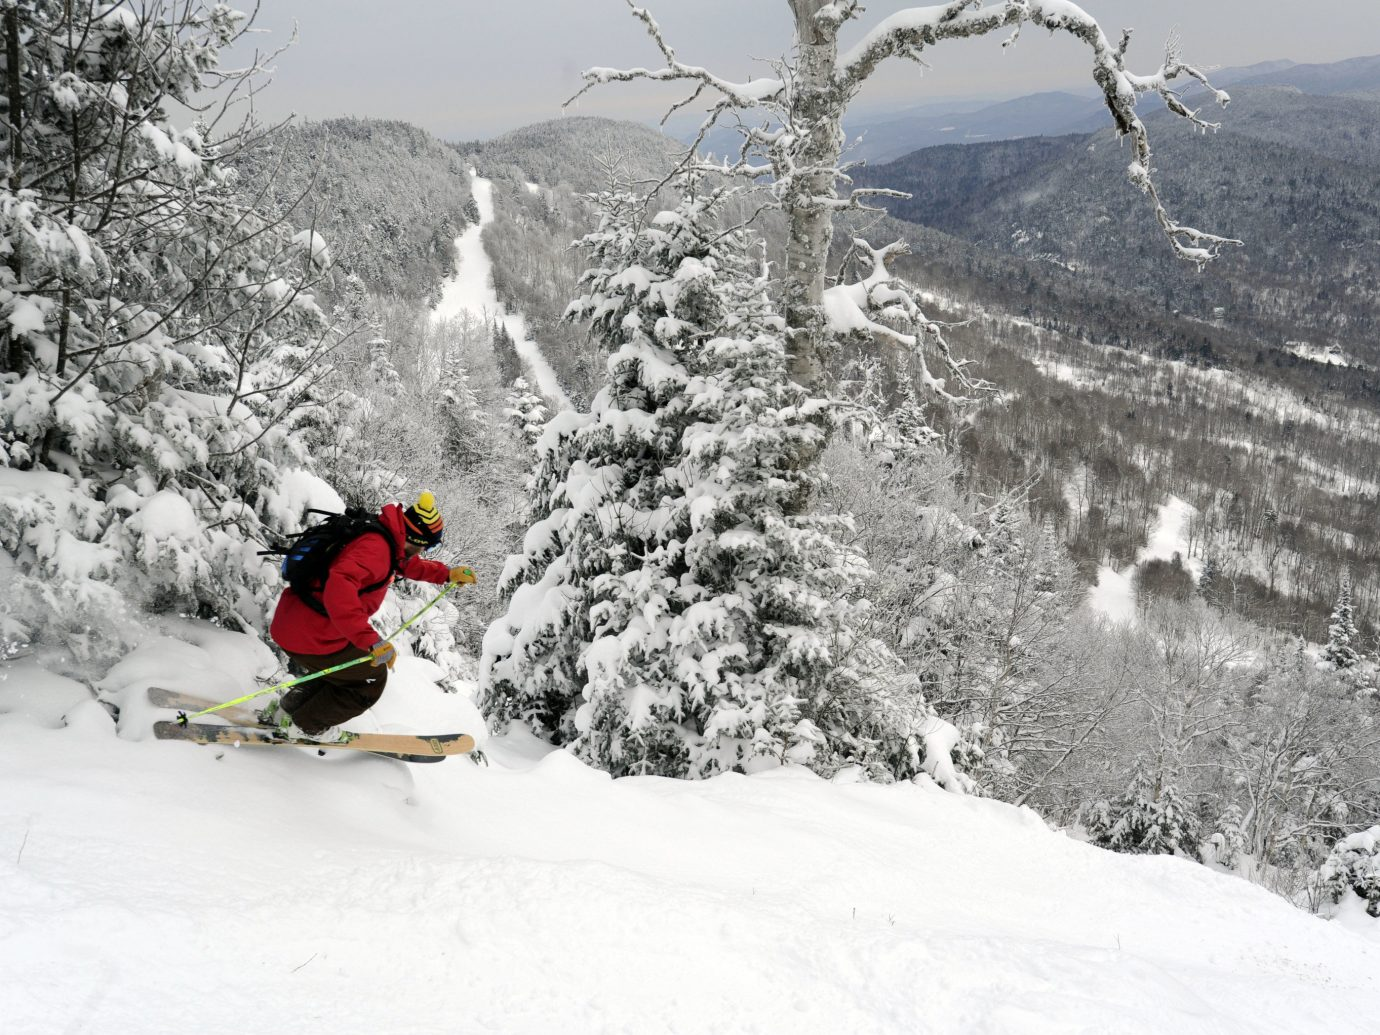 alpine skiing East Coast USA Jetsetter Guides Trip Ideas outdoor snow tree sky snowmobile mountain skiing person slope transport hill Winter geological phenomenon weather covered footwear Ski ski equipment winter sport piste sports extreme sport vehicle sports equipment freeride snowboard ski mountaineering mountain range ski touring day hillside